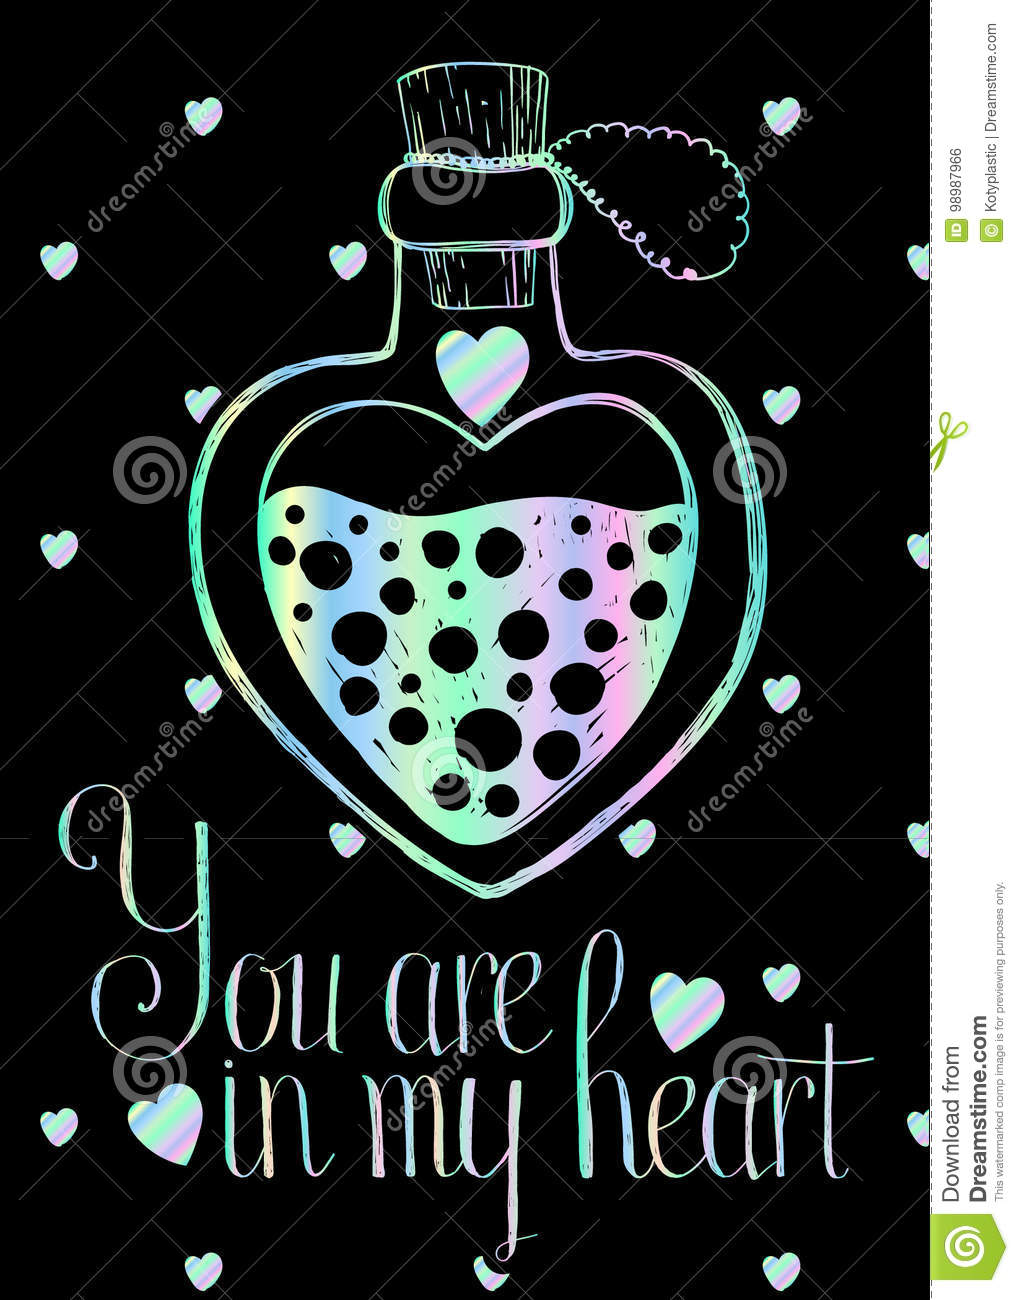 Lovely holographic greetings card on black background with lovely holographic greetings card on black background with holographic magic heart shaped bottle kristyandbryce Gallery